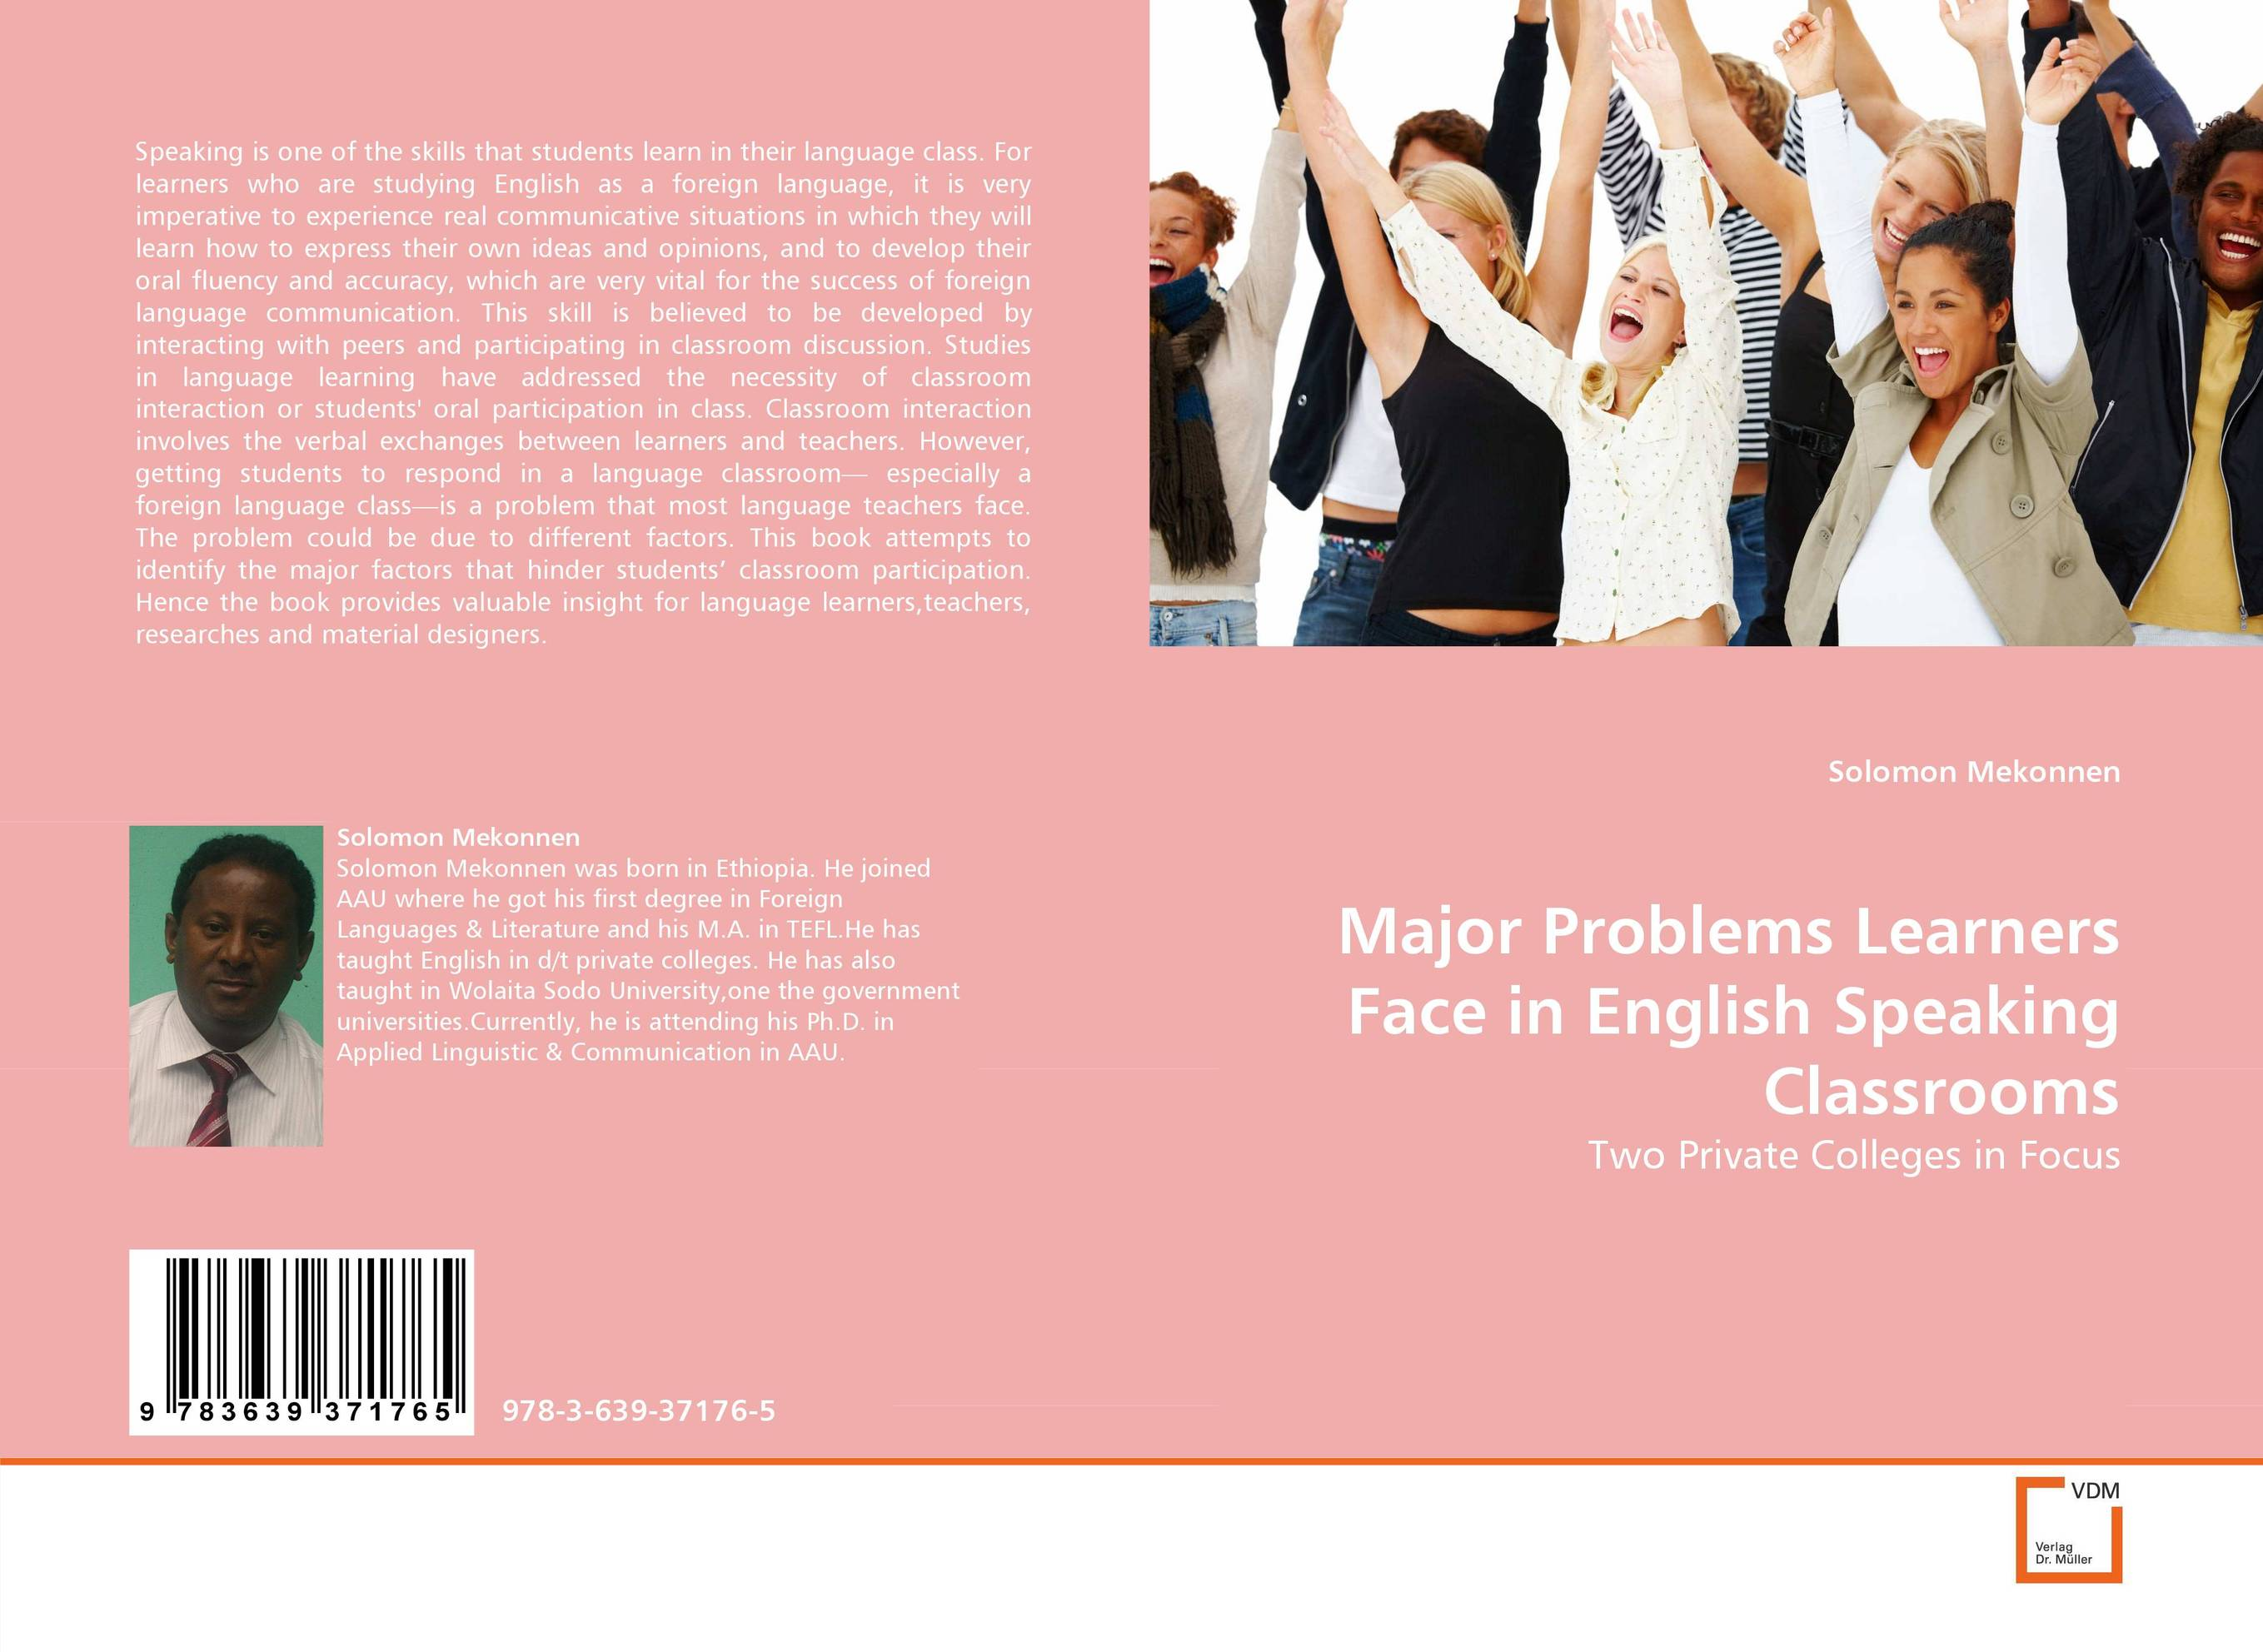 Major Problems Learners Face in English Speaking Classrooms crosslinguistic influence and crosslinguistic interaction in multilingual language learning